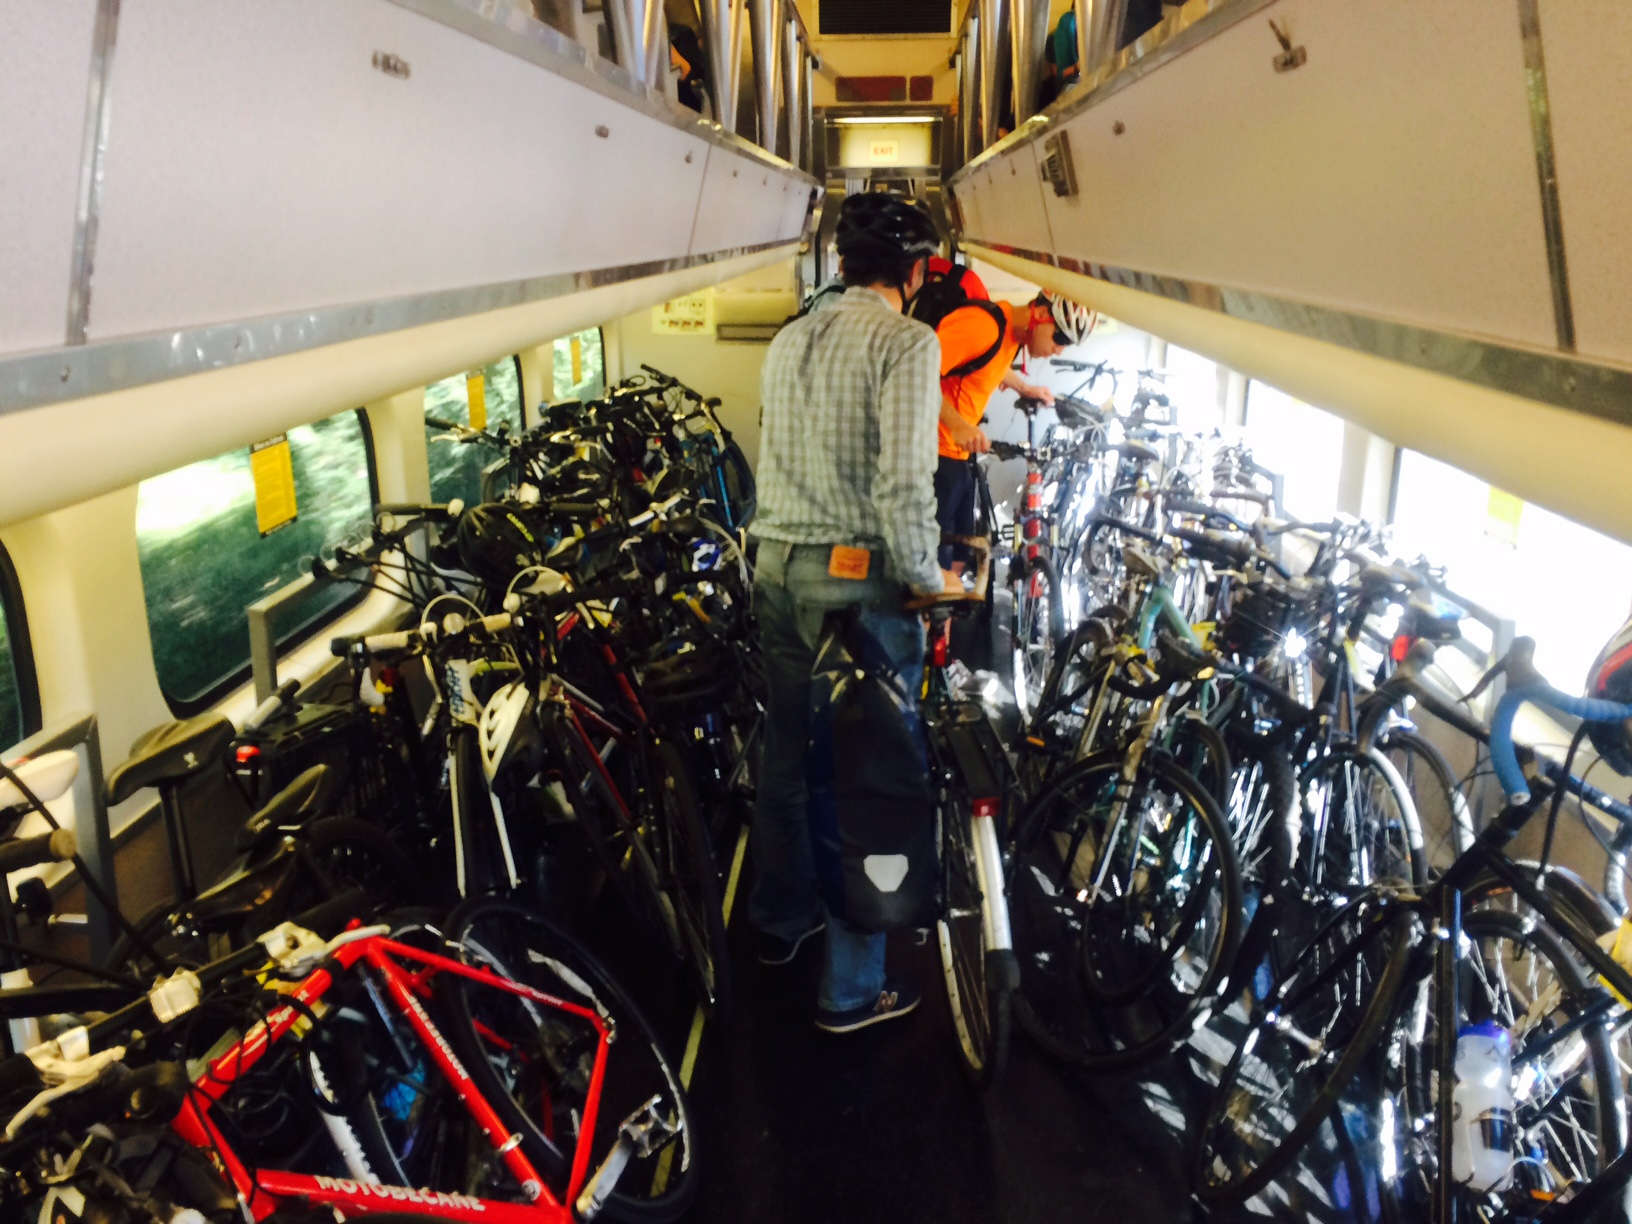 Bike parking and access to trains for people bringing bicycles on-board are among the issues discussed by Caltrain's Bicycle Advisory Committee. Photo: Andrew Boone